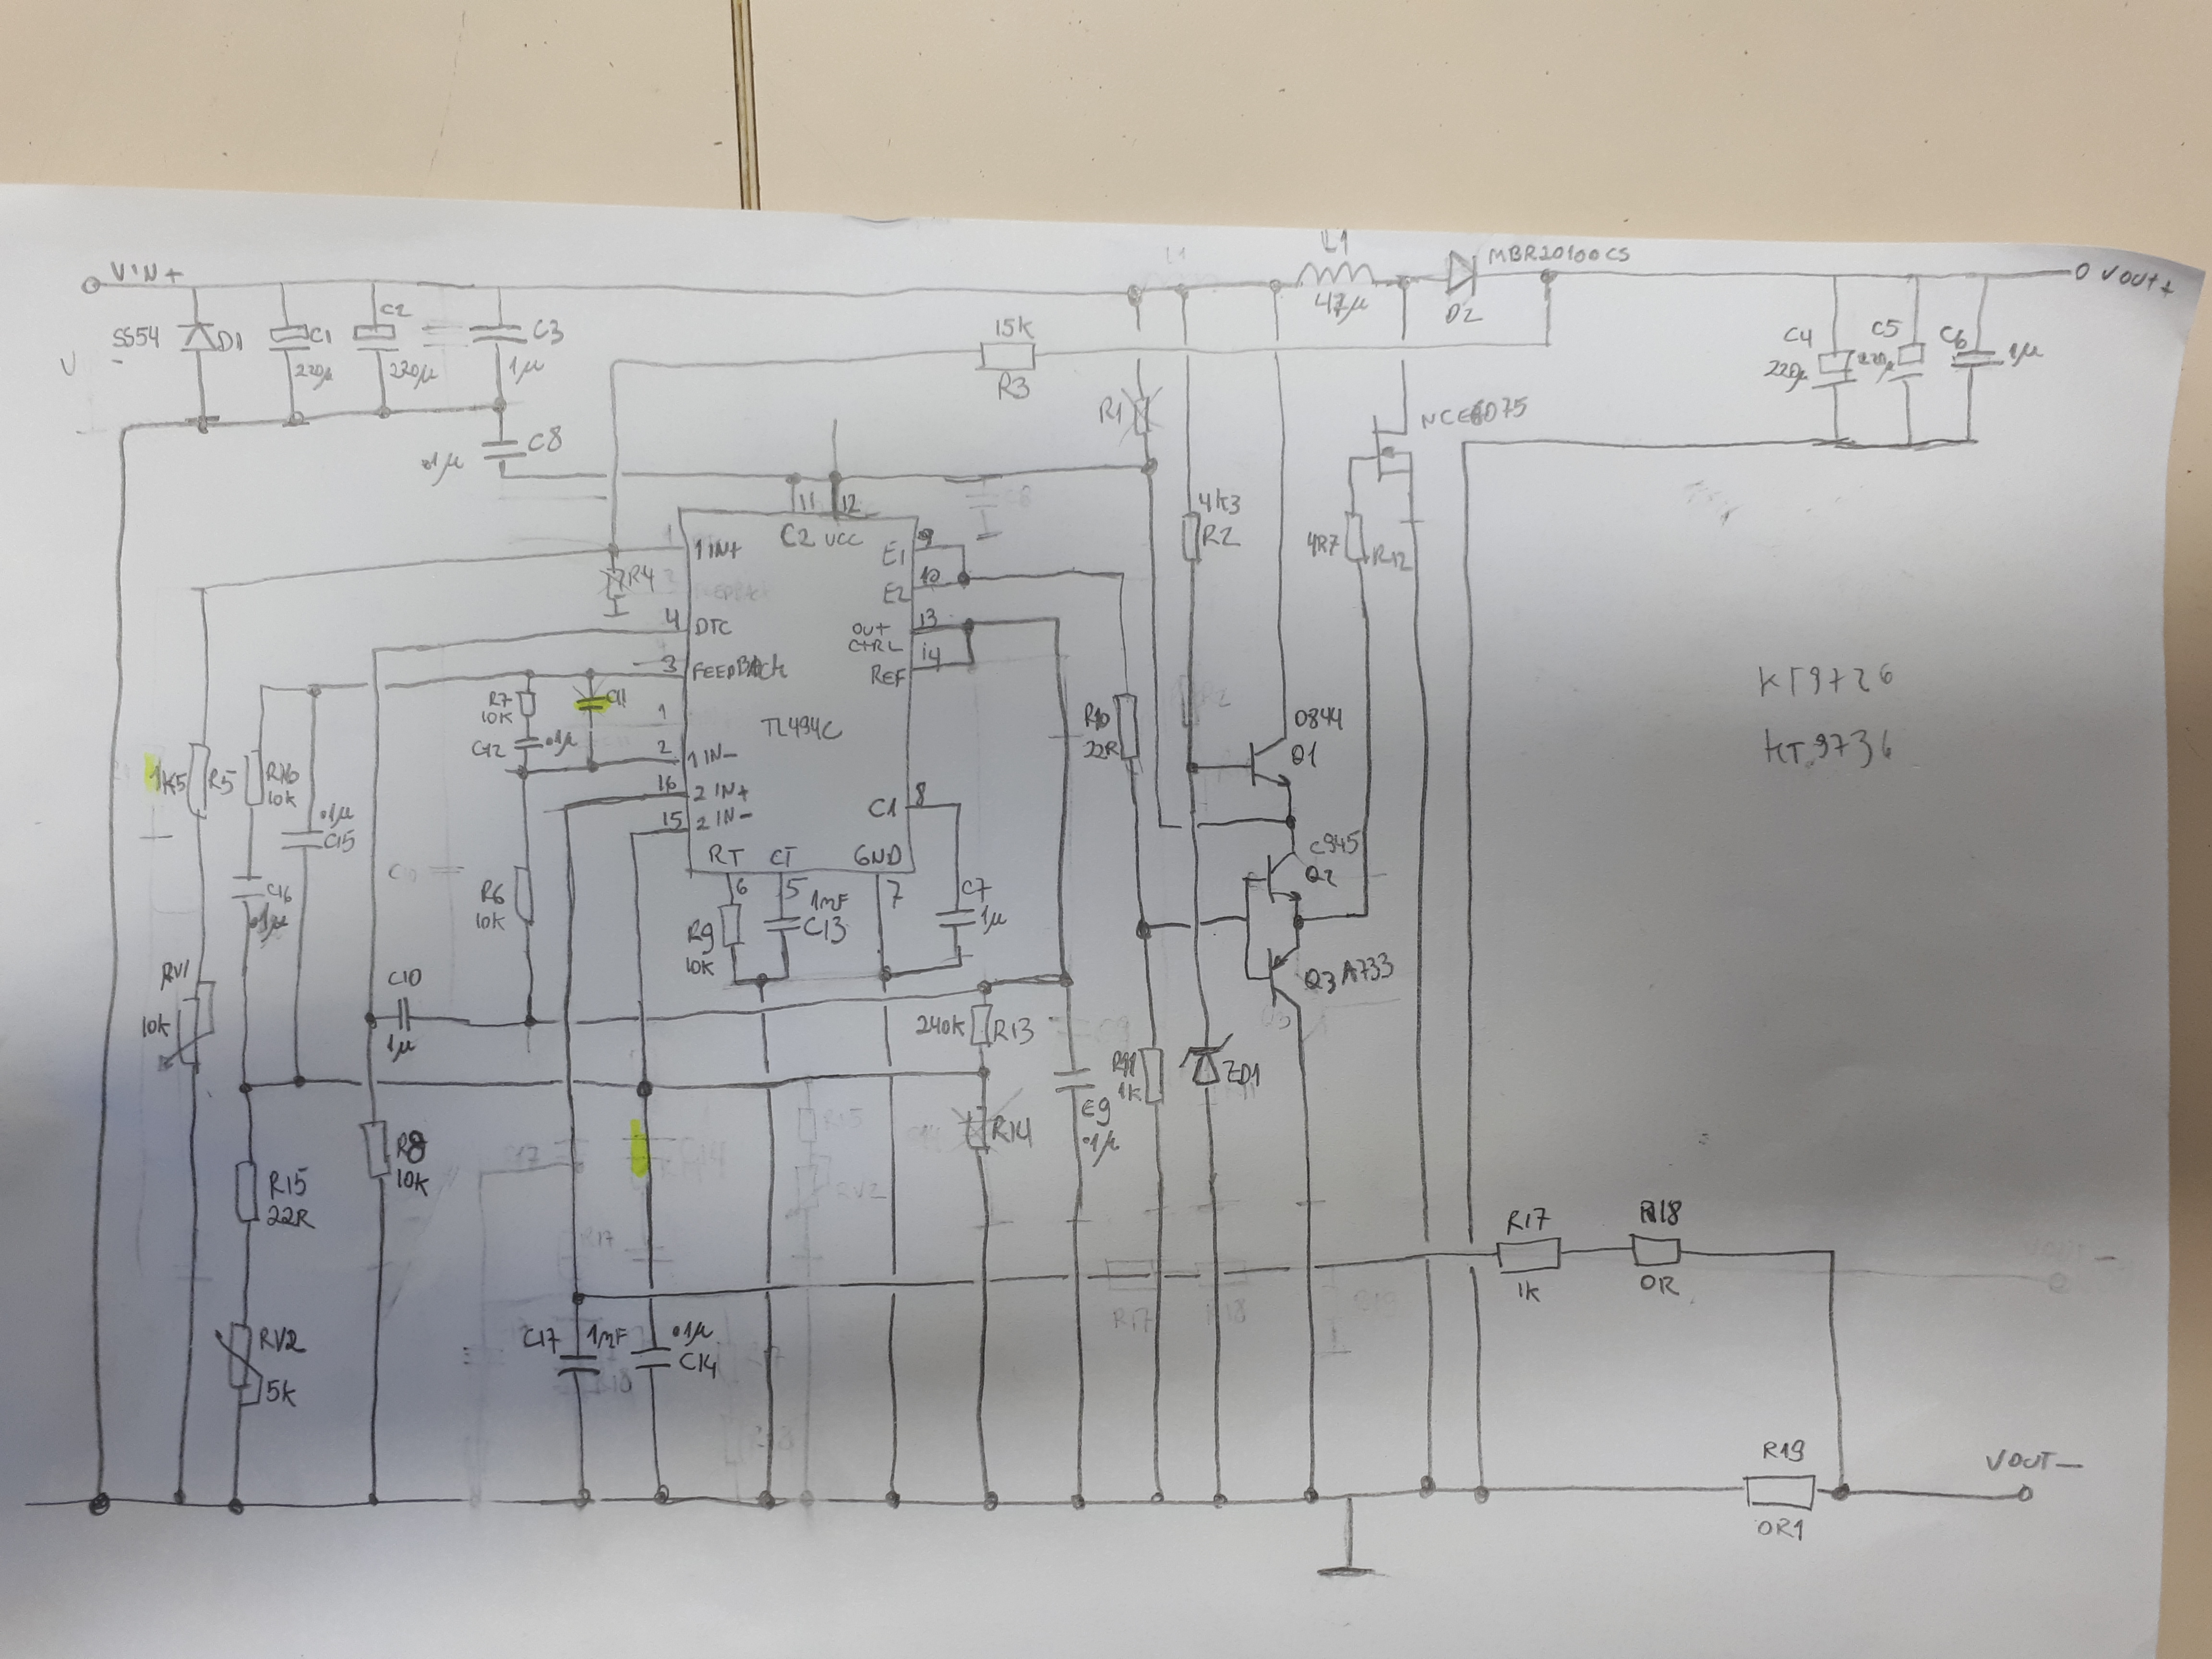 Tl494 Dc Converter Metal Core Constant Current 200w Cheap High Voltage Low To Invertercircuit Diagram World I Configura The Soft Start Around 05s Instead Recomended 50 100 Cycles Of Clock If Not My Problem Is Solved Please See Below